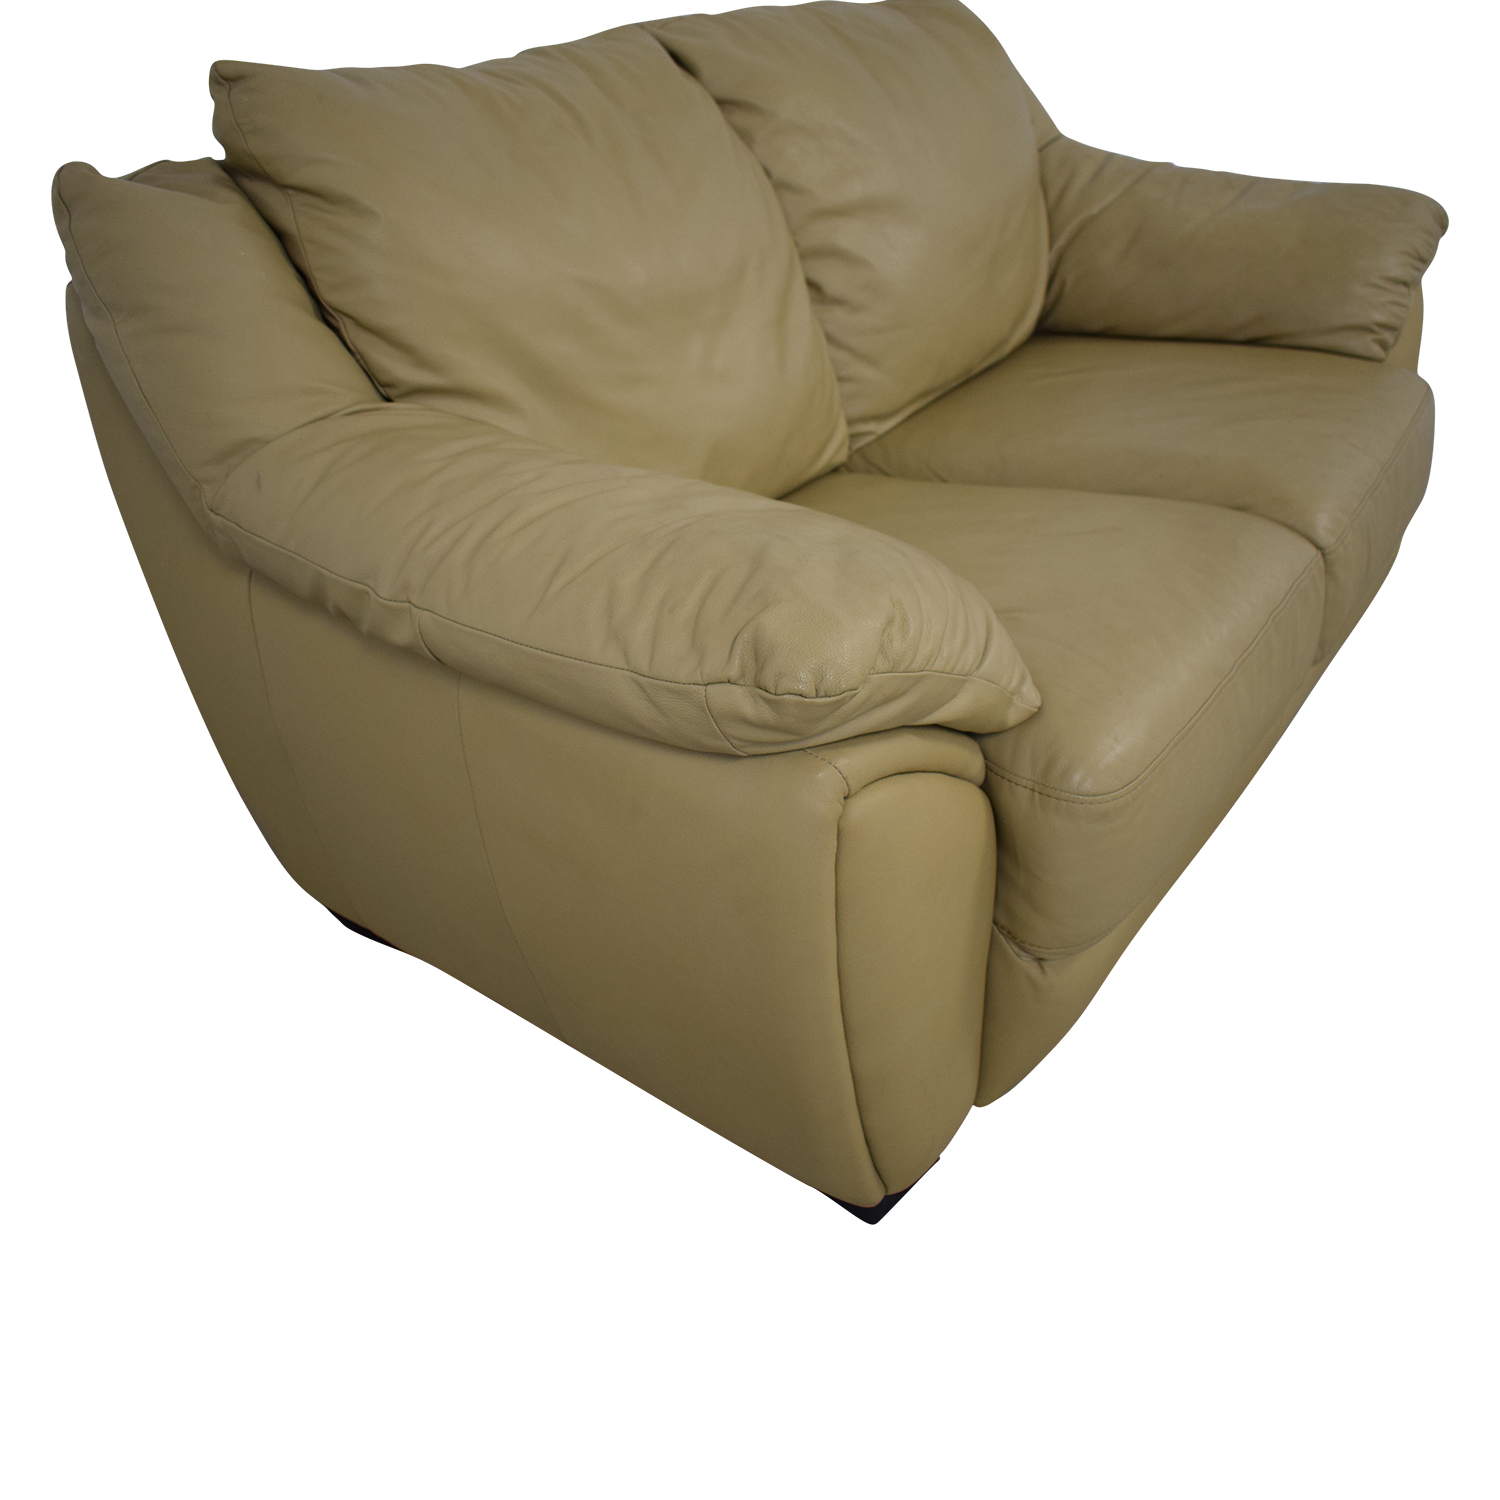 DeCoro DeCoro Leather Love Seat discount